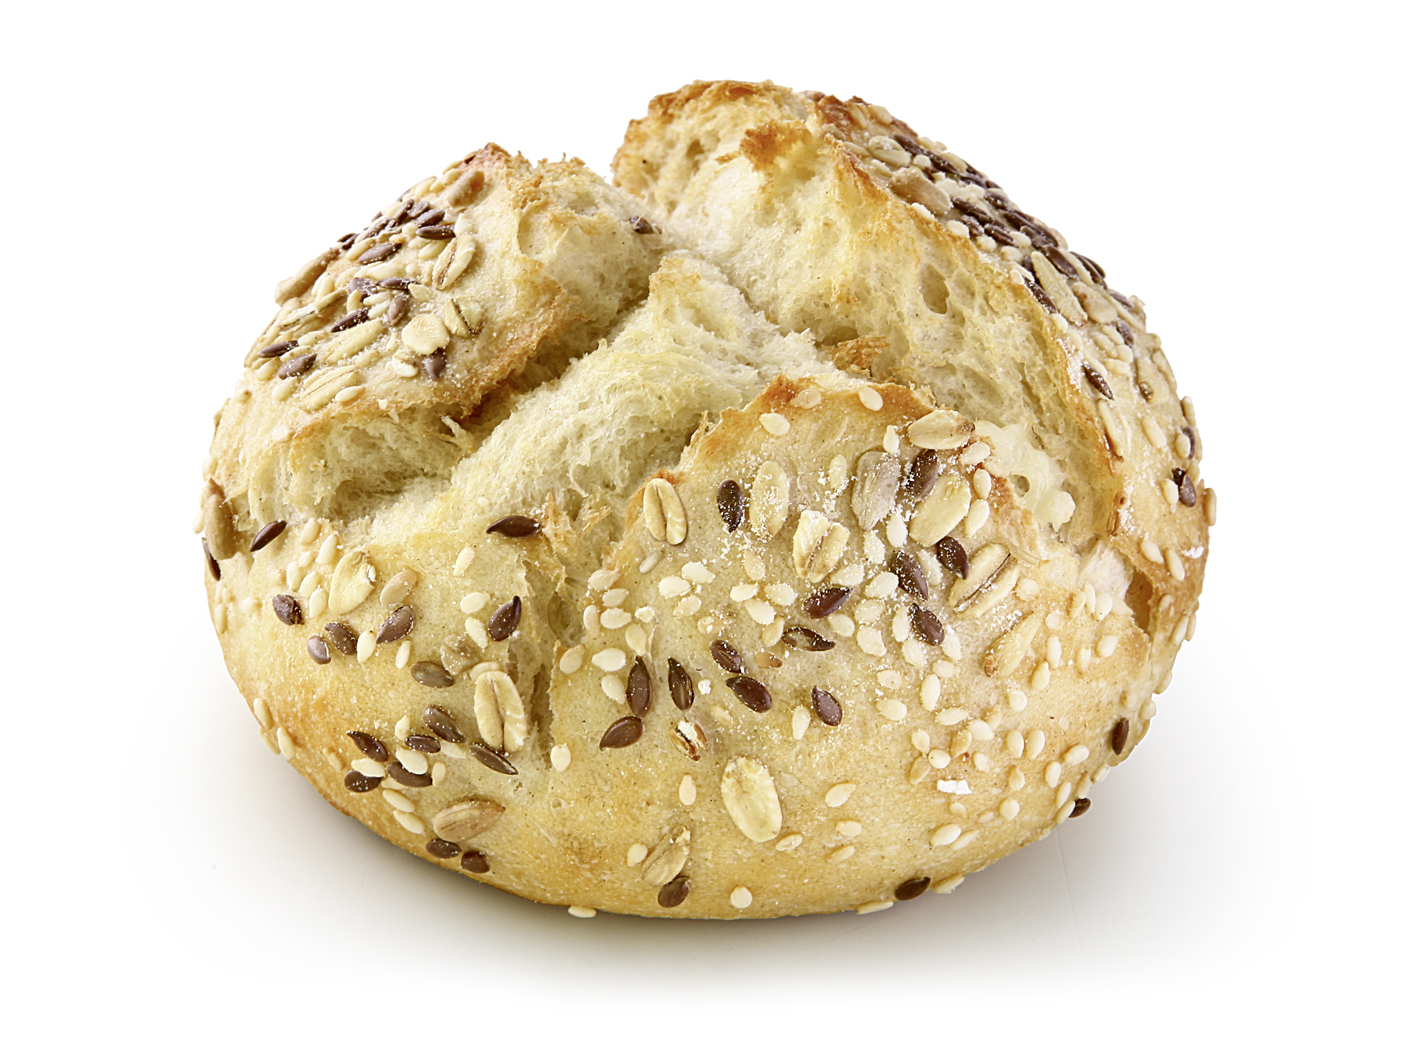 Potato Roll with Seeds - Wheat small bakery with 11% potato flakes and 32% seeds (sesame, linseeds, sunflower kernels).